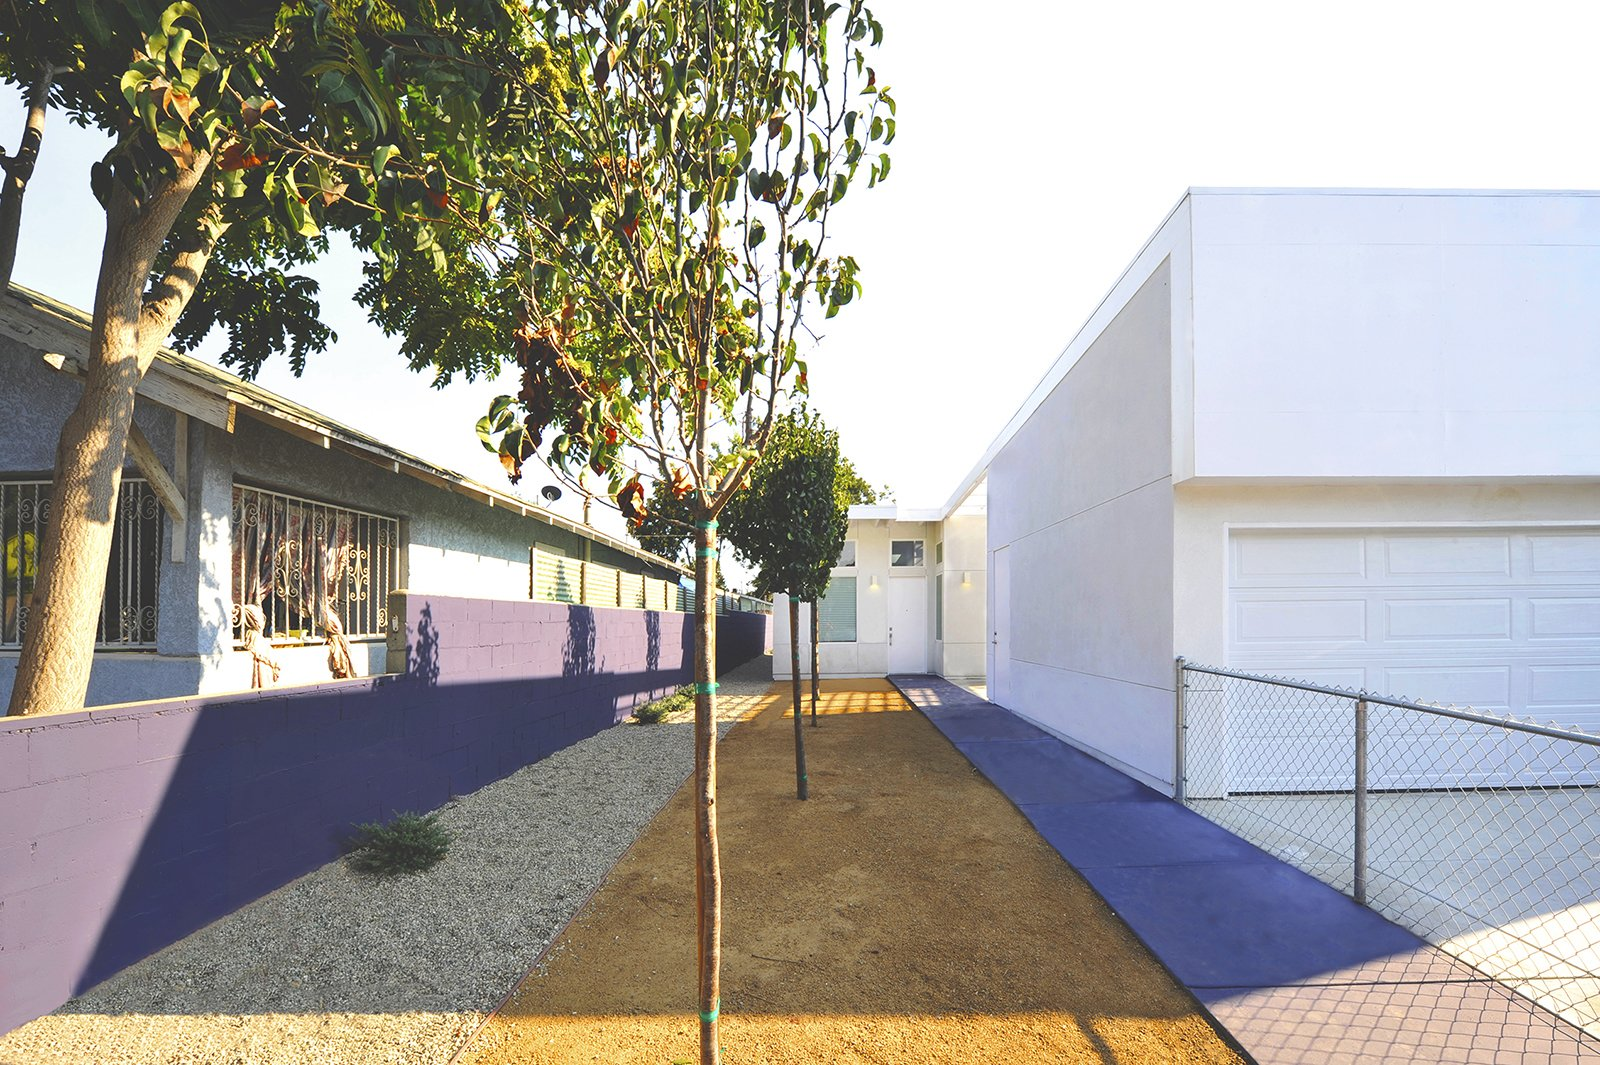 """The houses, like the 53rd Street Prototype, feature lean and gracious walkways to the front door. """"Though these prototypes are set in economically challenged neighborhoods of South Los Angeles, their design provides for integrated defensible space while maintaining openness and connection to the outdoors,"""" states the project description.  Photo 4 of 11 in Vibrant Affordable Housing Prototypes in Los Angeles"""